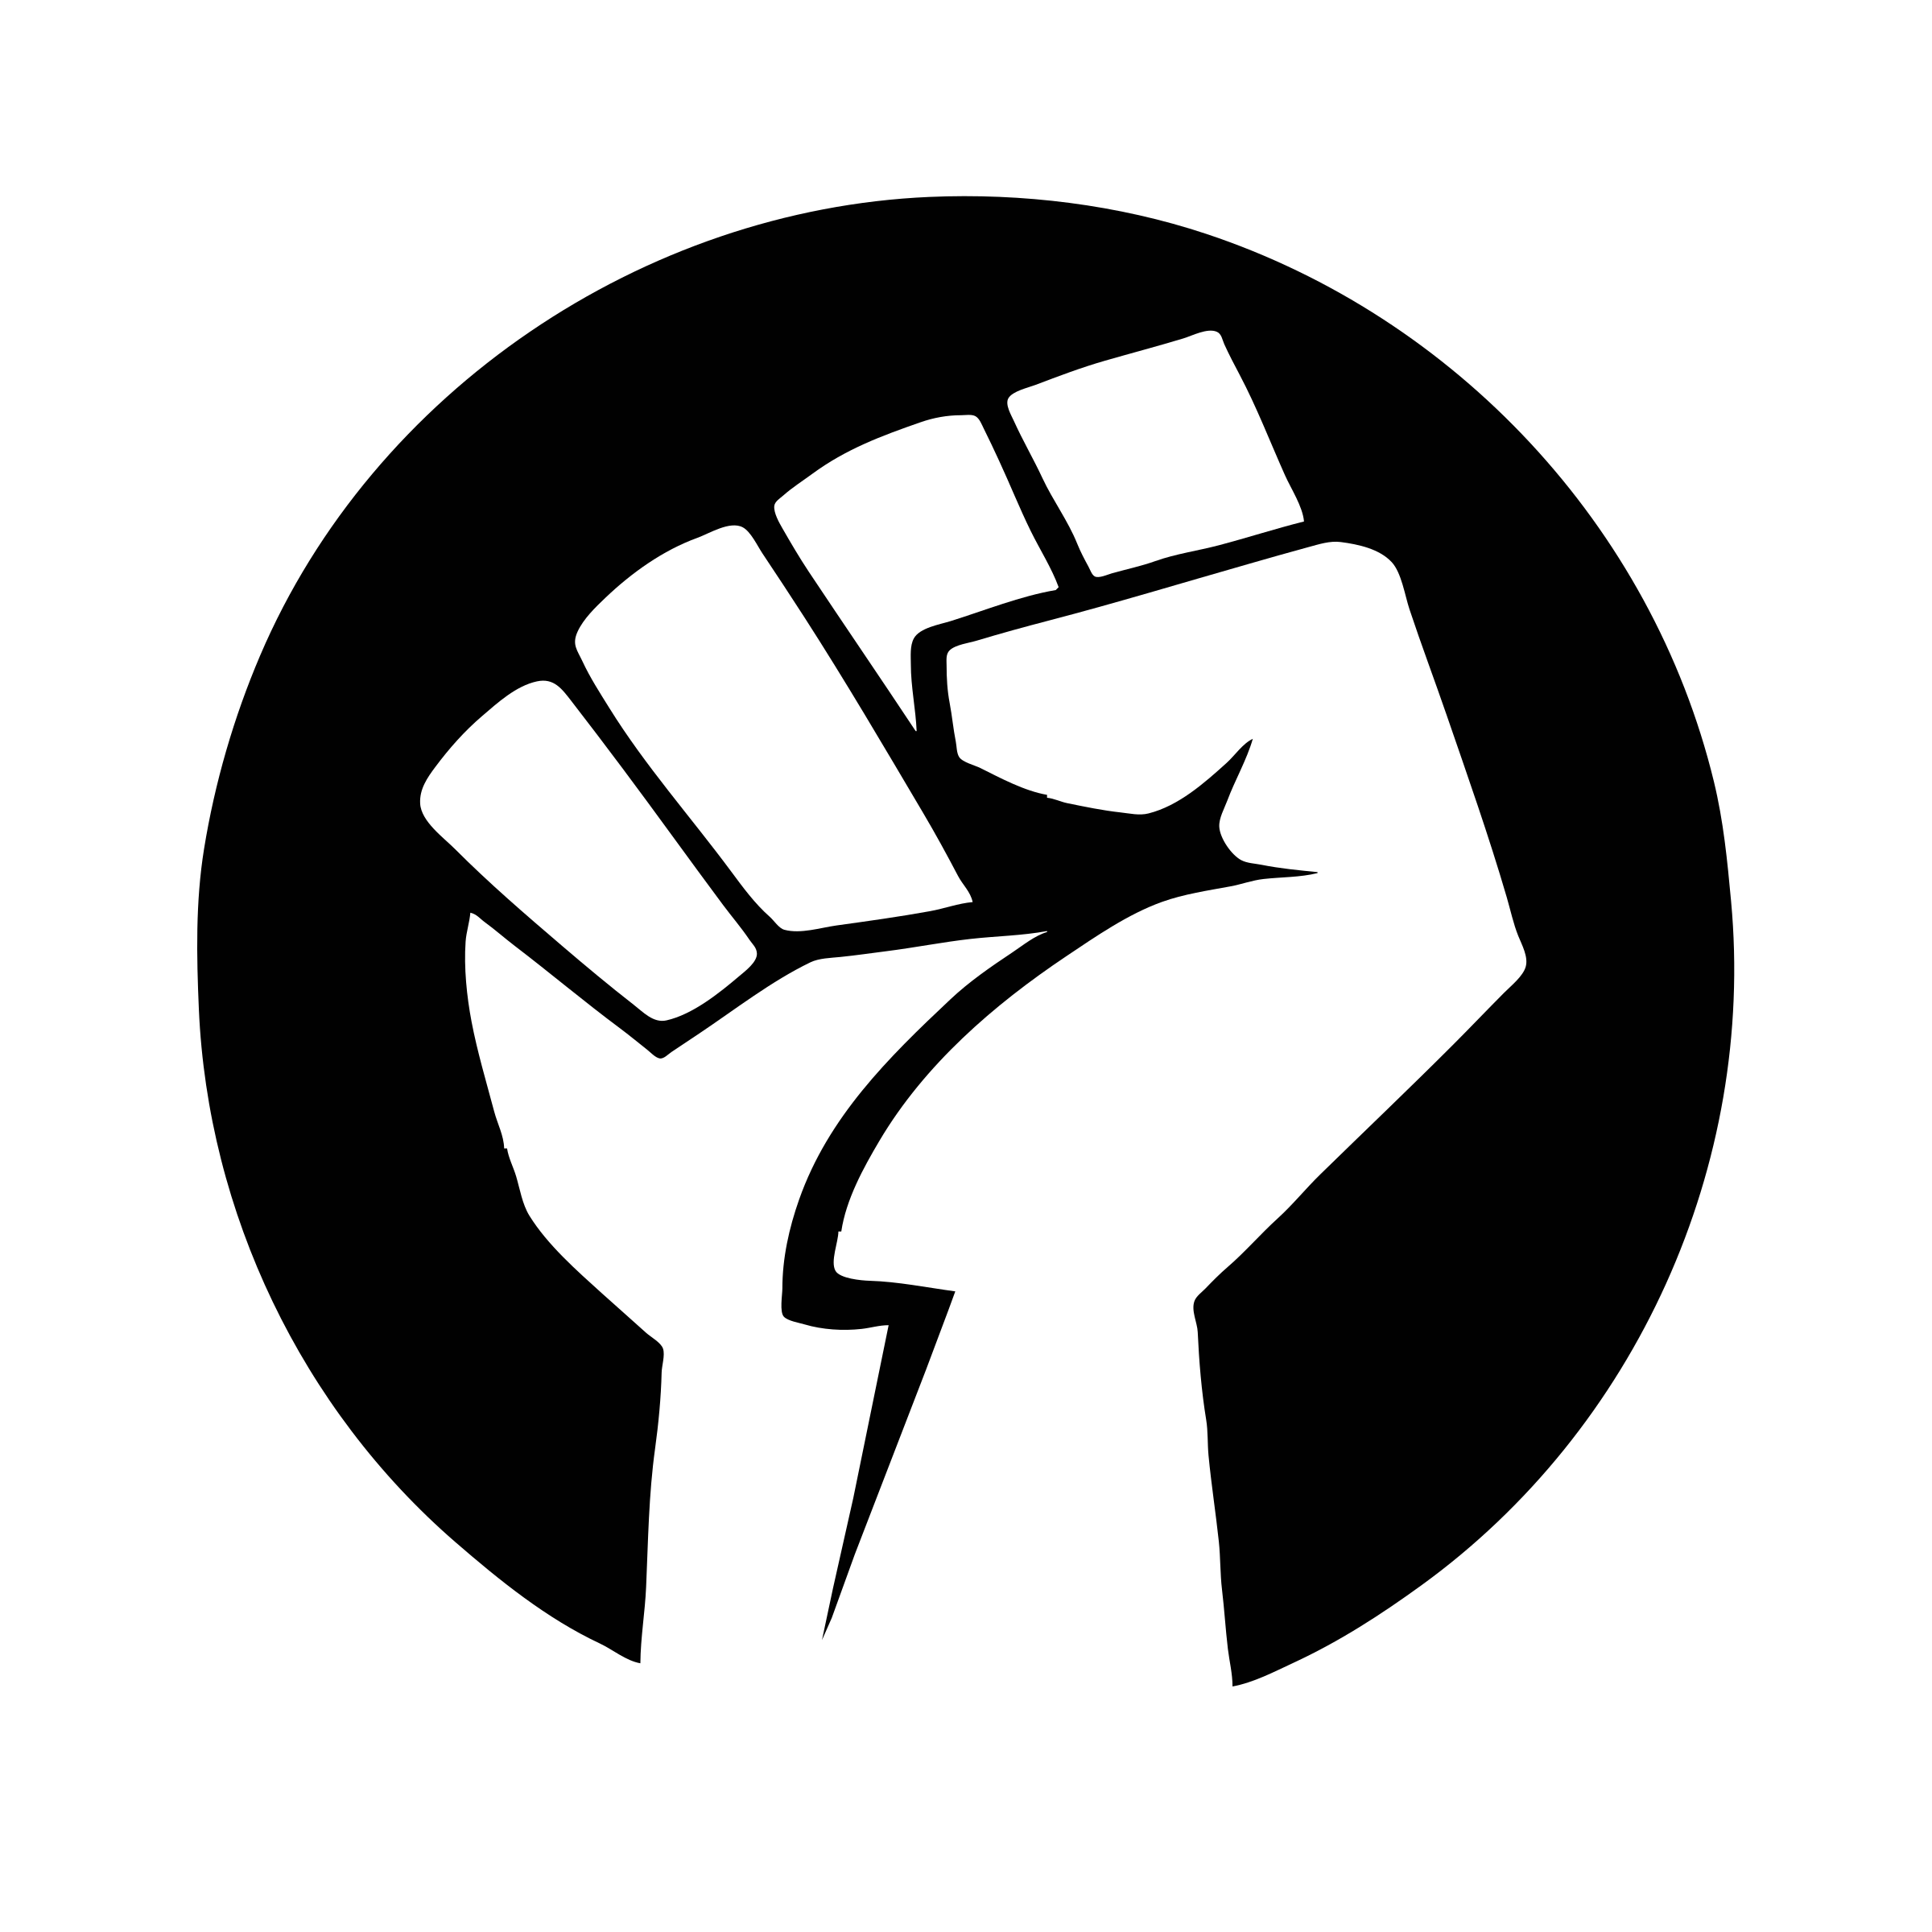 Speaking truth to power. Word clipart electricity clipart free stock